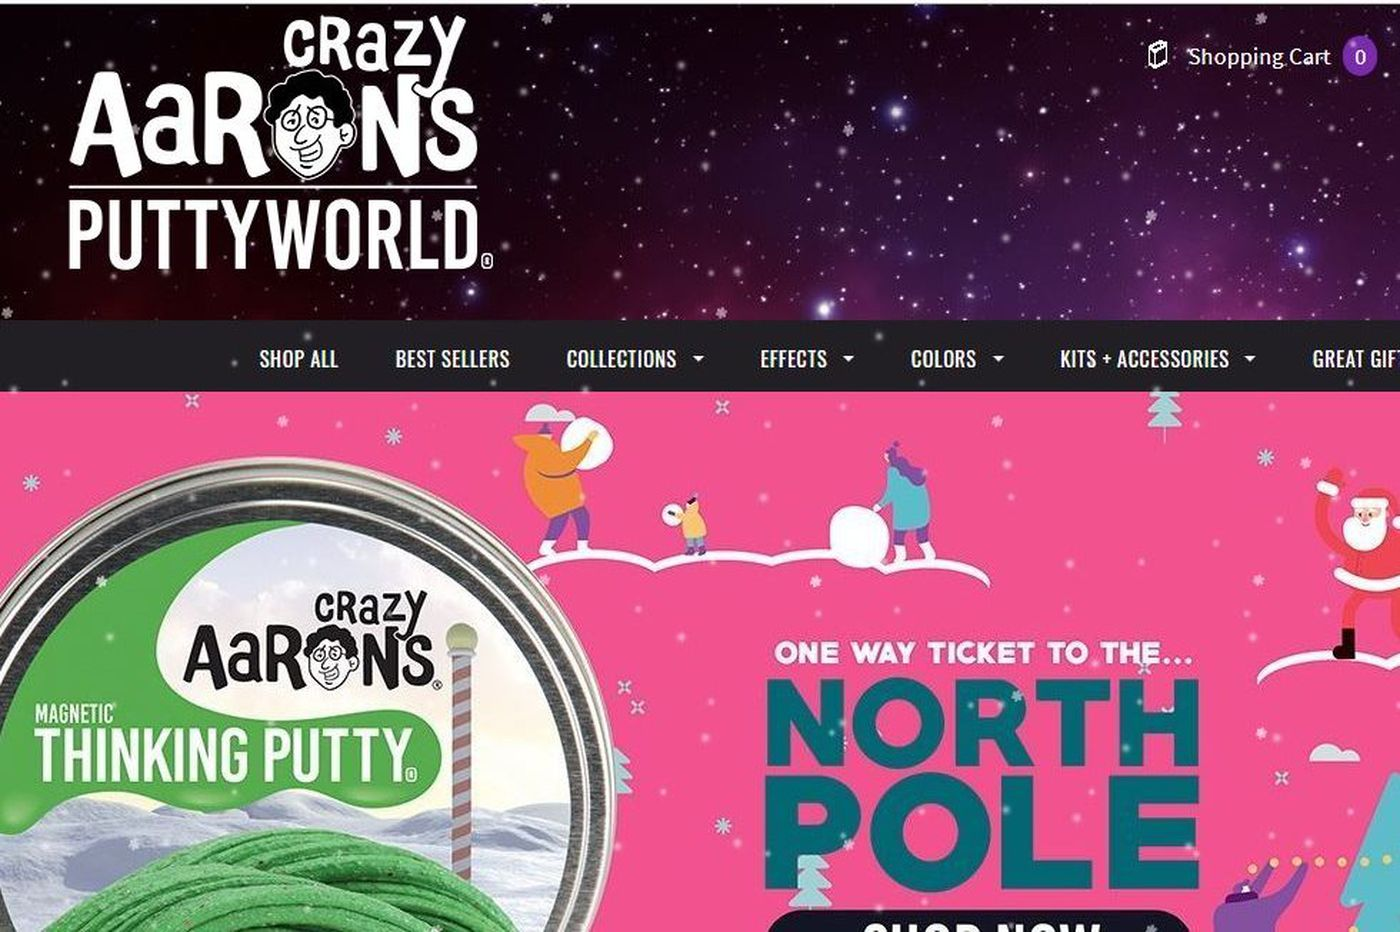 Crazy Aaron's, creator of Thinking Putty, opening store in Norristown